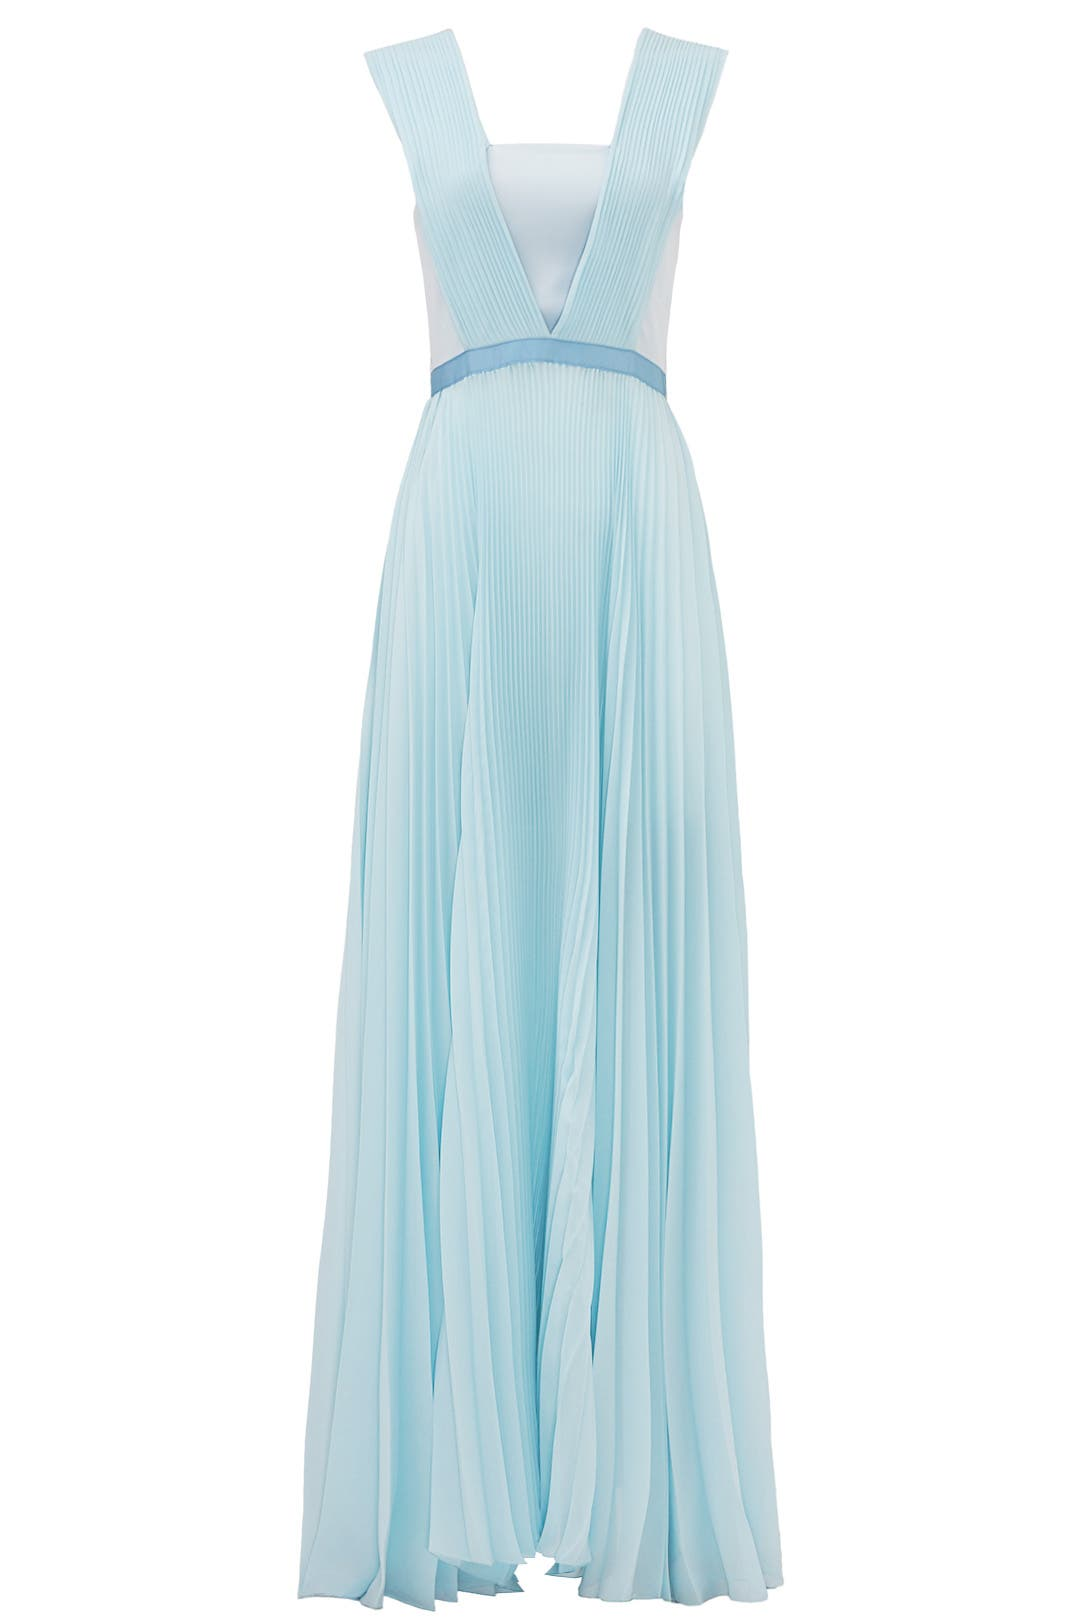 Glacier Blue Gown by Vionnet for $299 | Rent the Runway